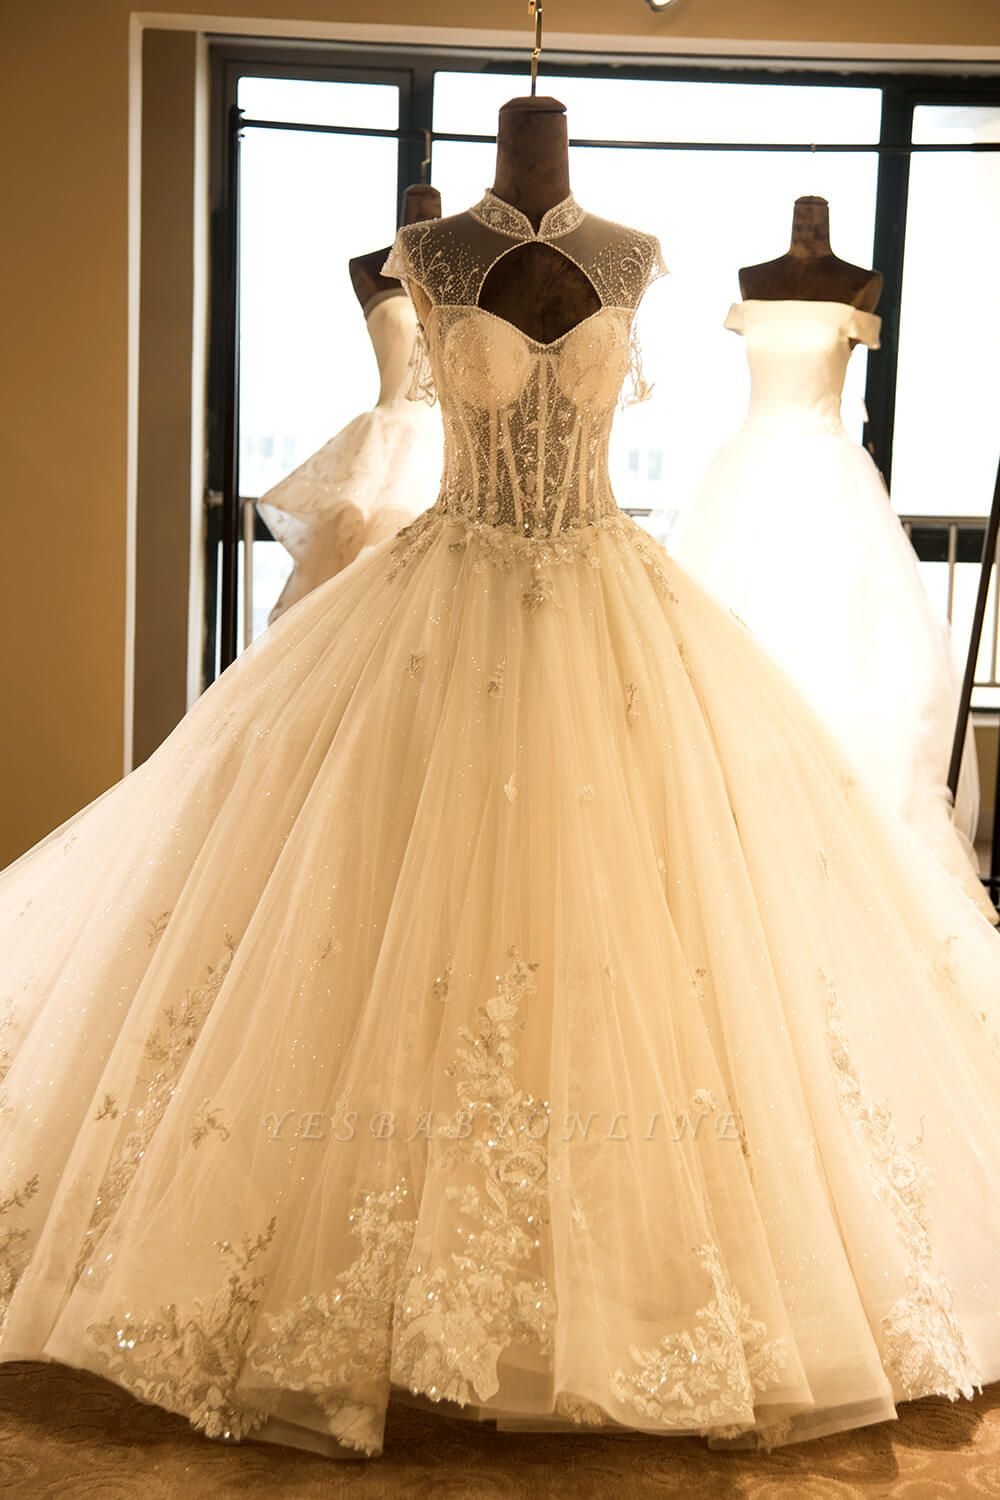 Glamorous High Neck Lace-up Tulle Wedding Dress | Haute Couture Bridal Gowns Series